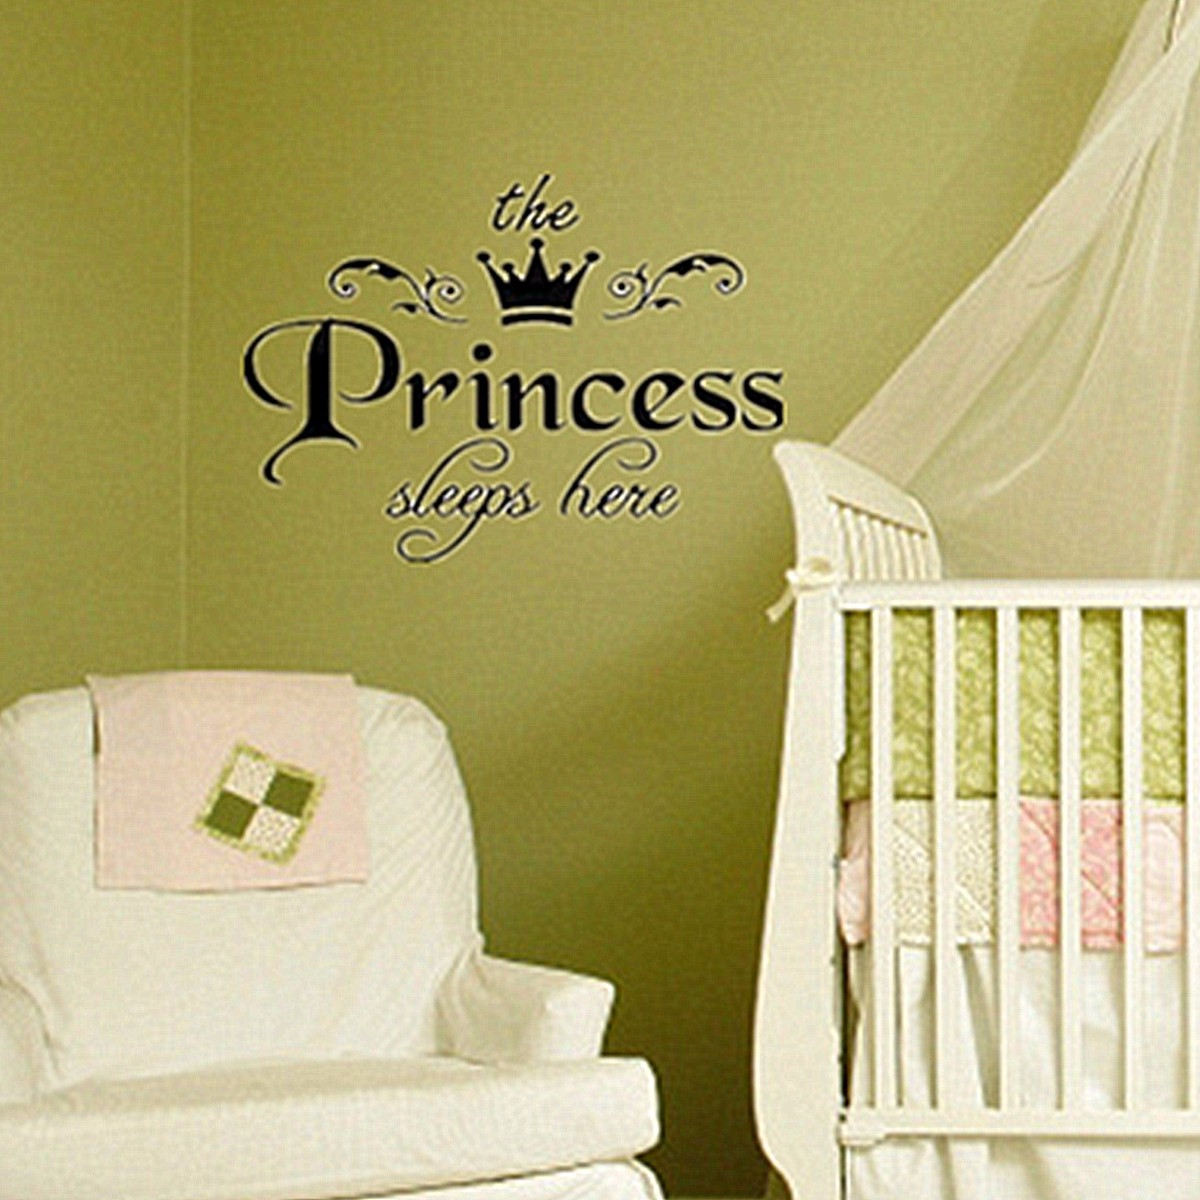 Fairy Stickers For Walls Removable Princess Sleeps Wall Stickers Art Vinyl Decals